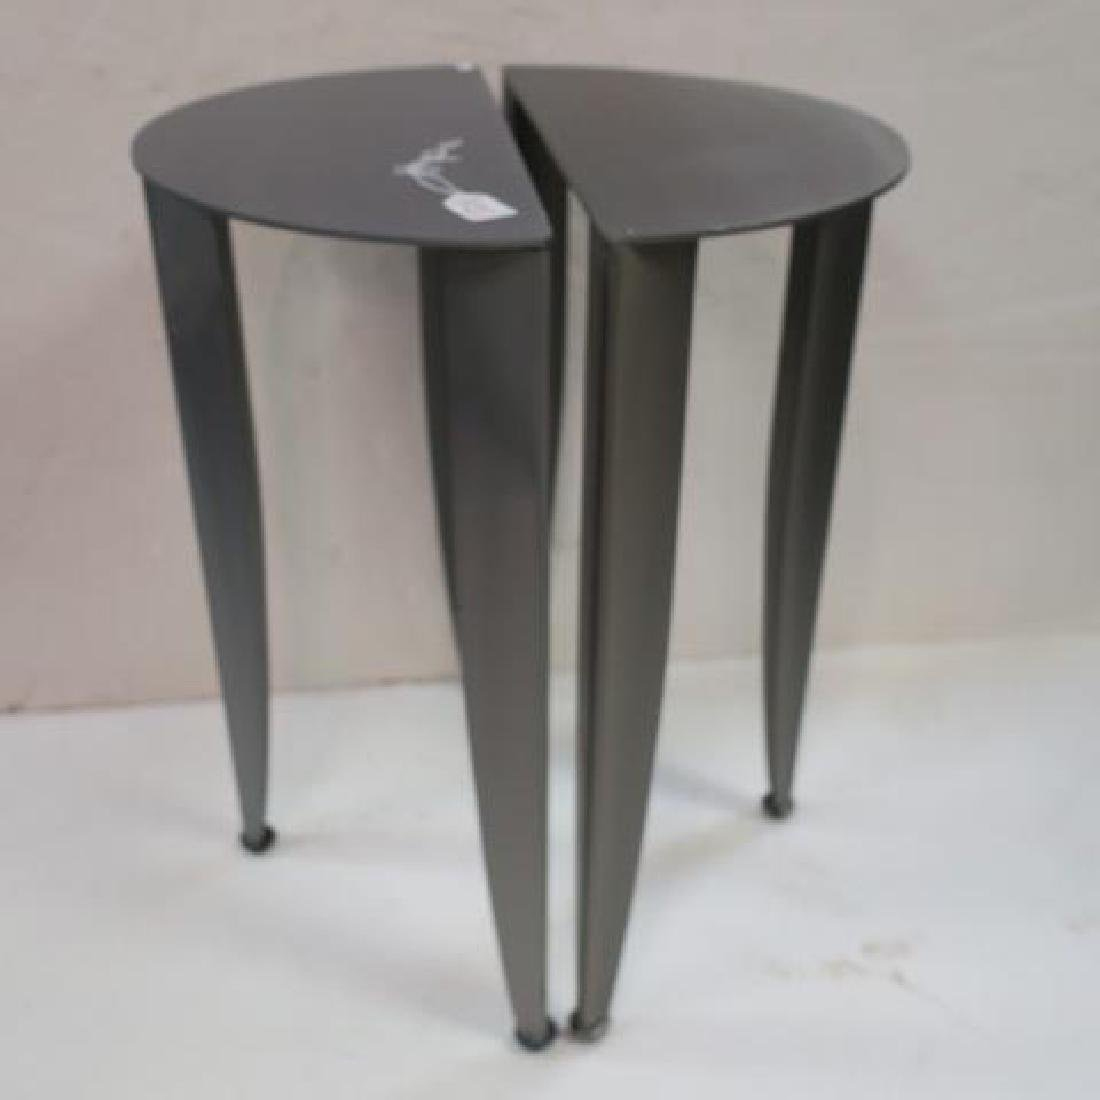 Pair of Petite Steel Industrial Demi-Lune Tables: